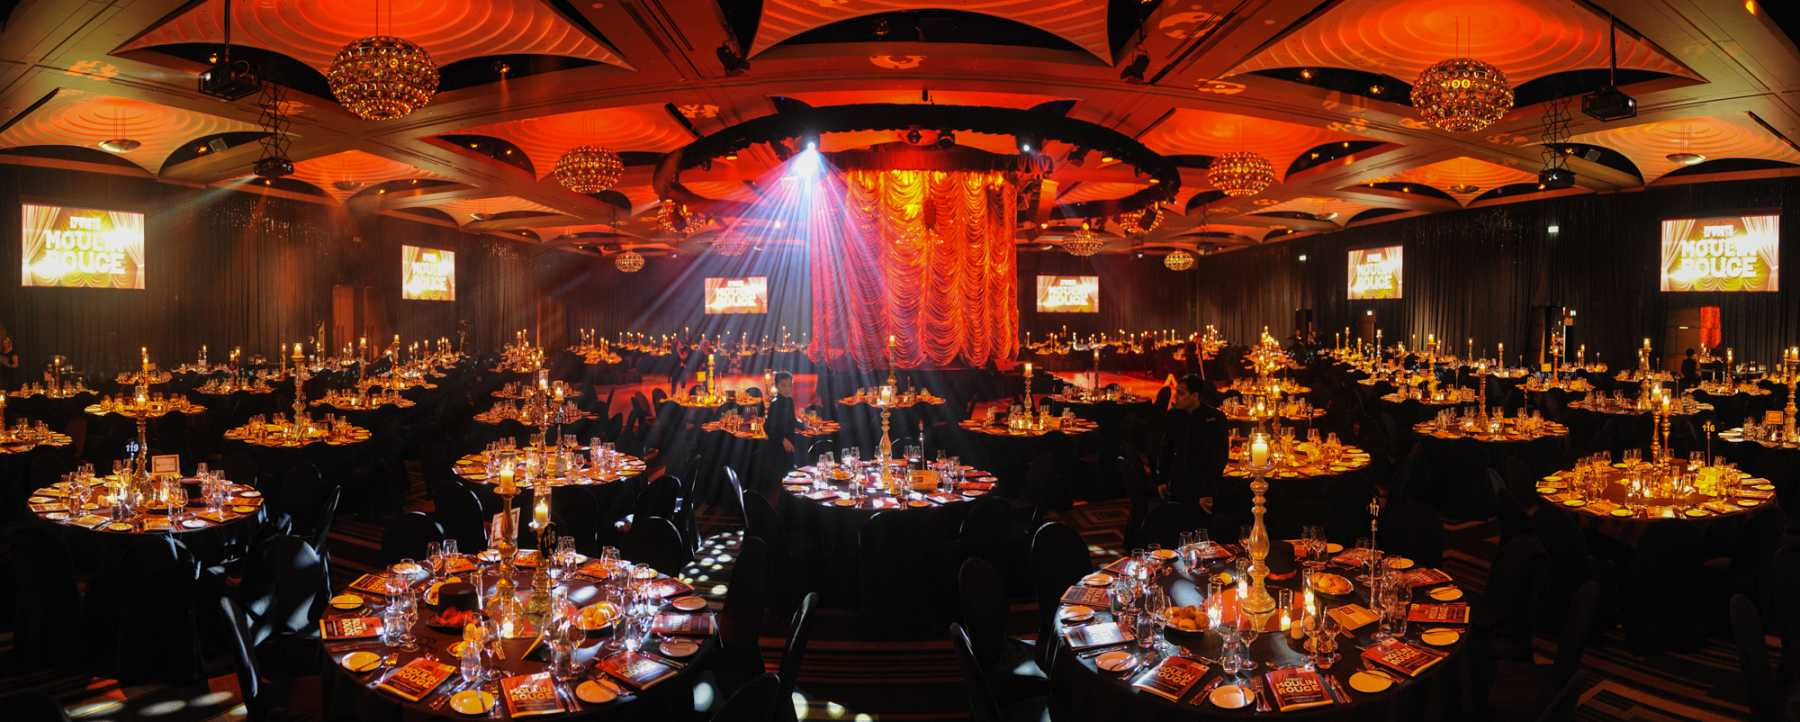 EPWORTH MEDICAL FOUNDATION GALA DINNER 2015